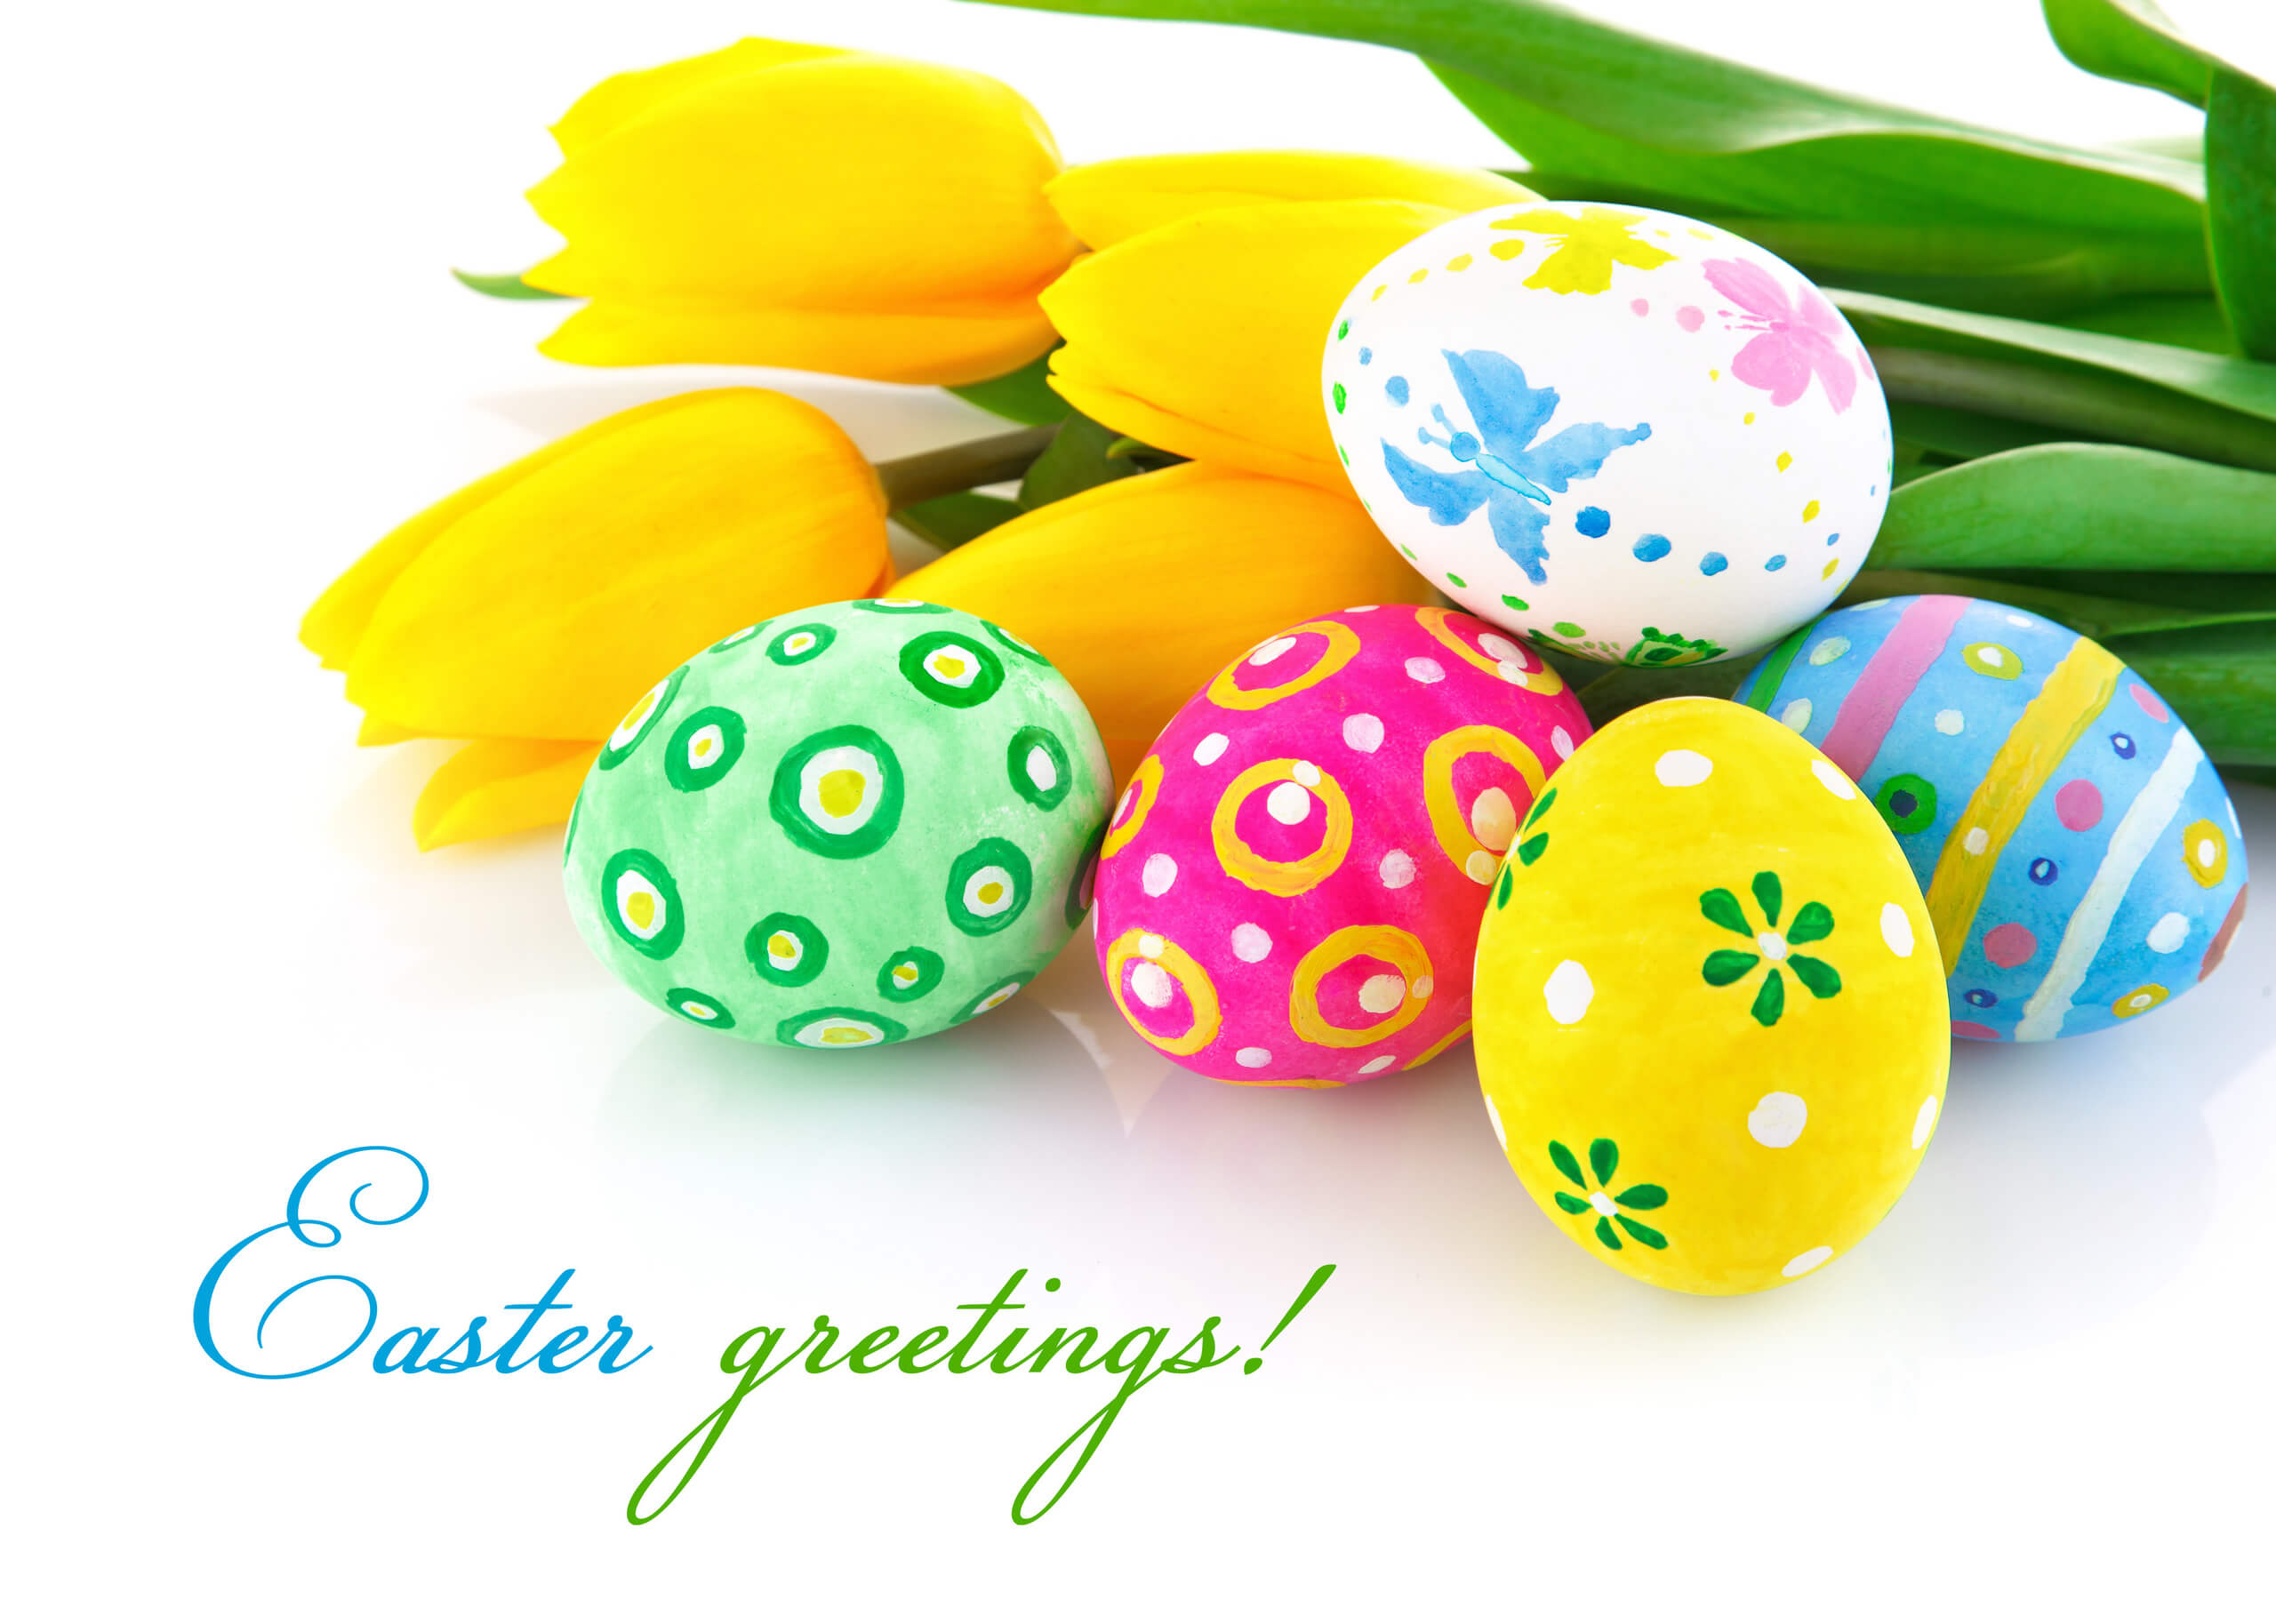 happy easter greetings hd wallpaper